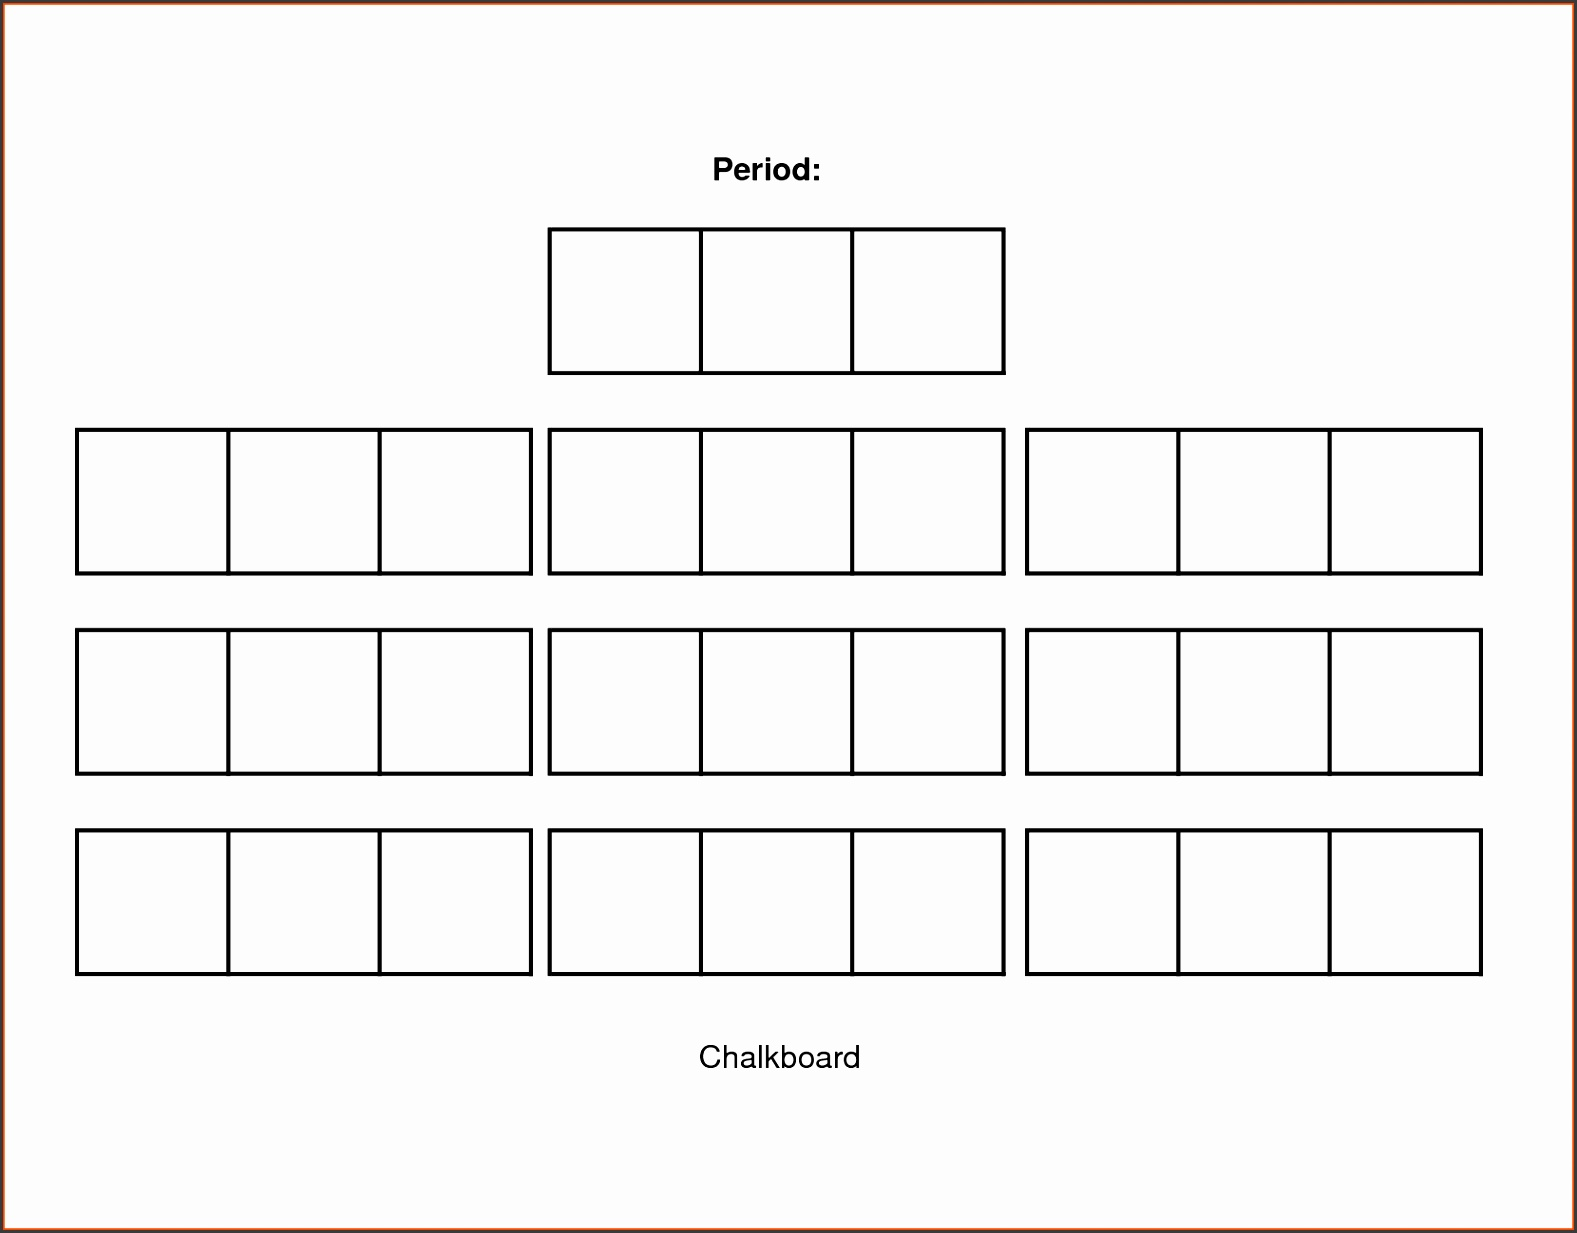 Ideas Collection Classroom Seating Chart Cute Seating Chart Templates Ideas Collection School Bus